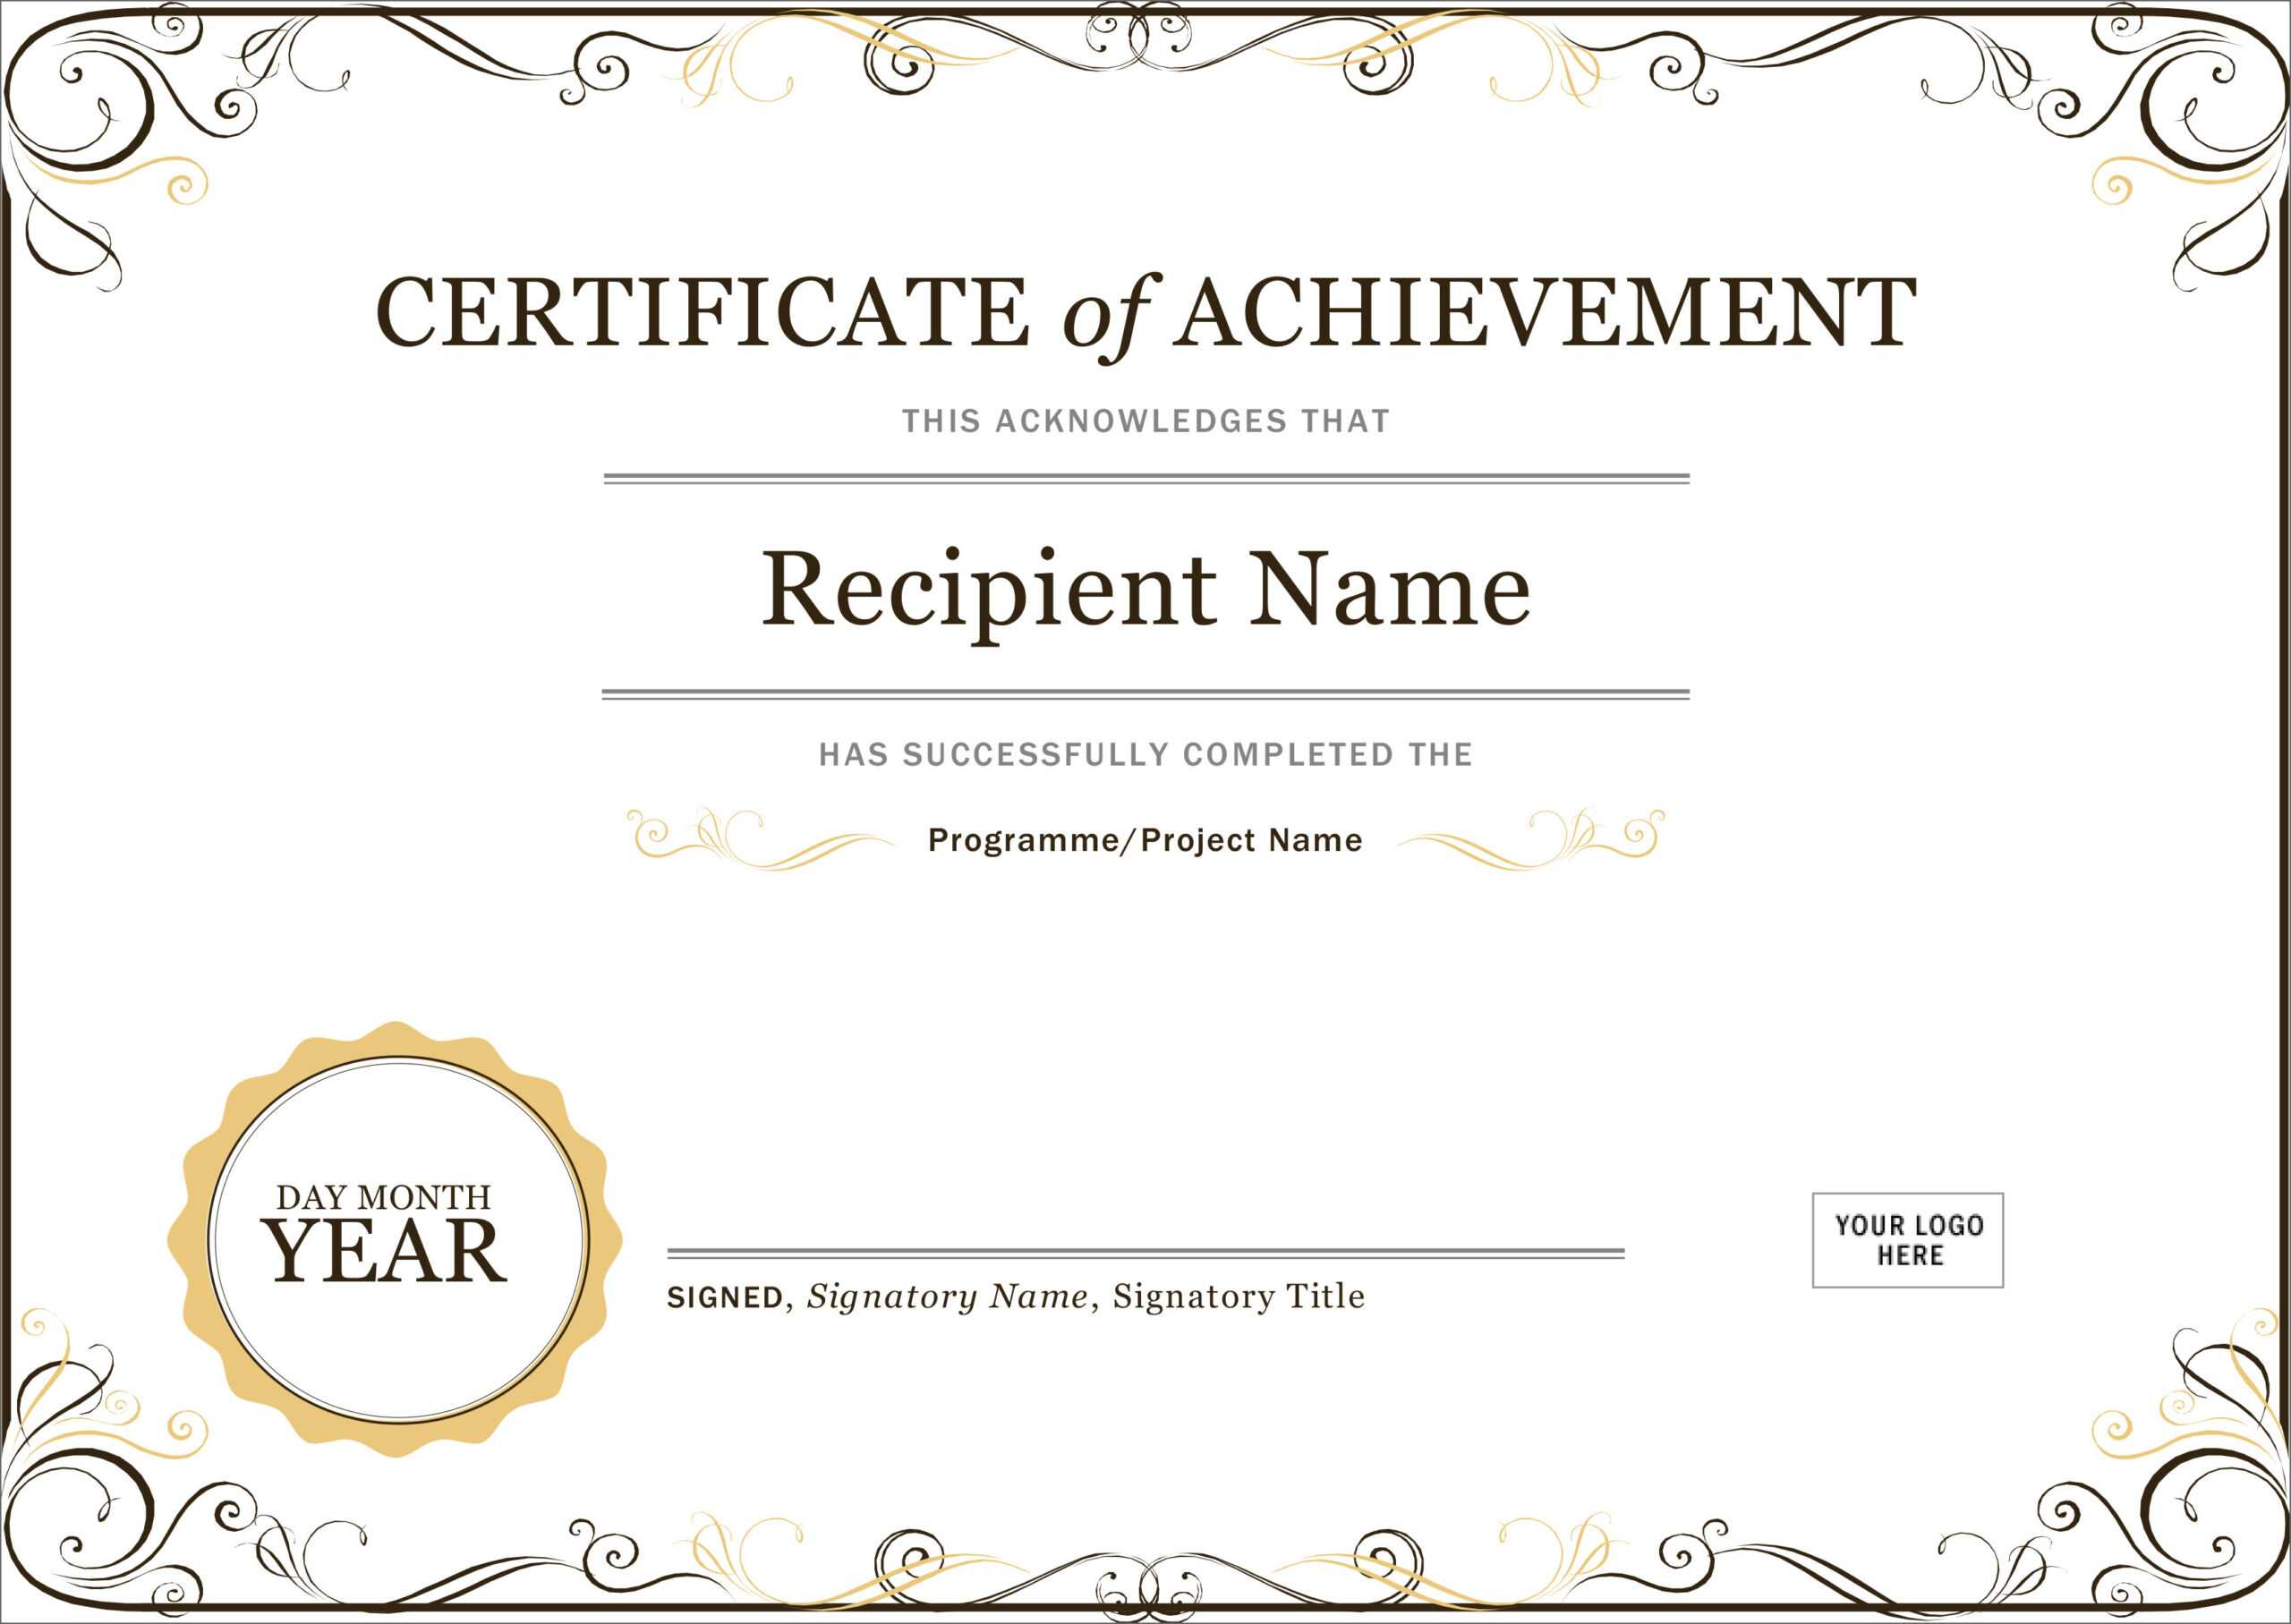 50 Free Creative Blank Certificate Templates In Psd In Update Certificates That Use Certificate Templates